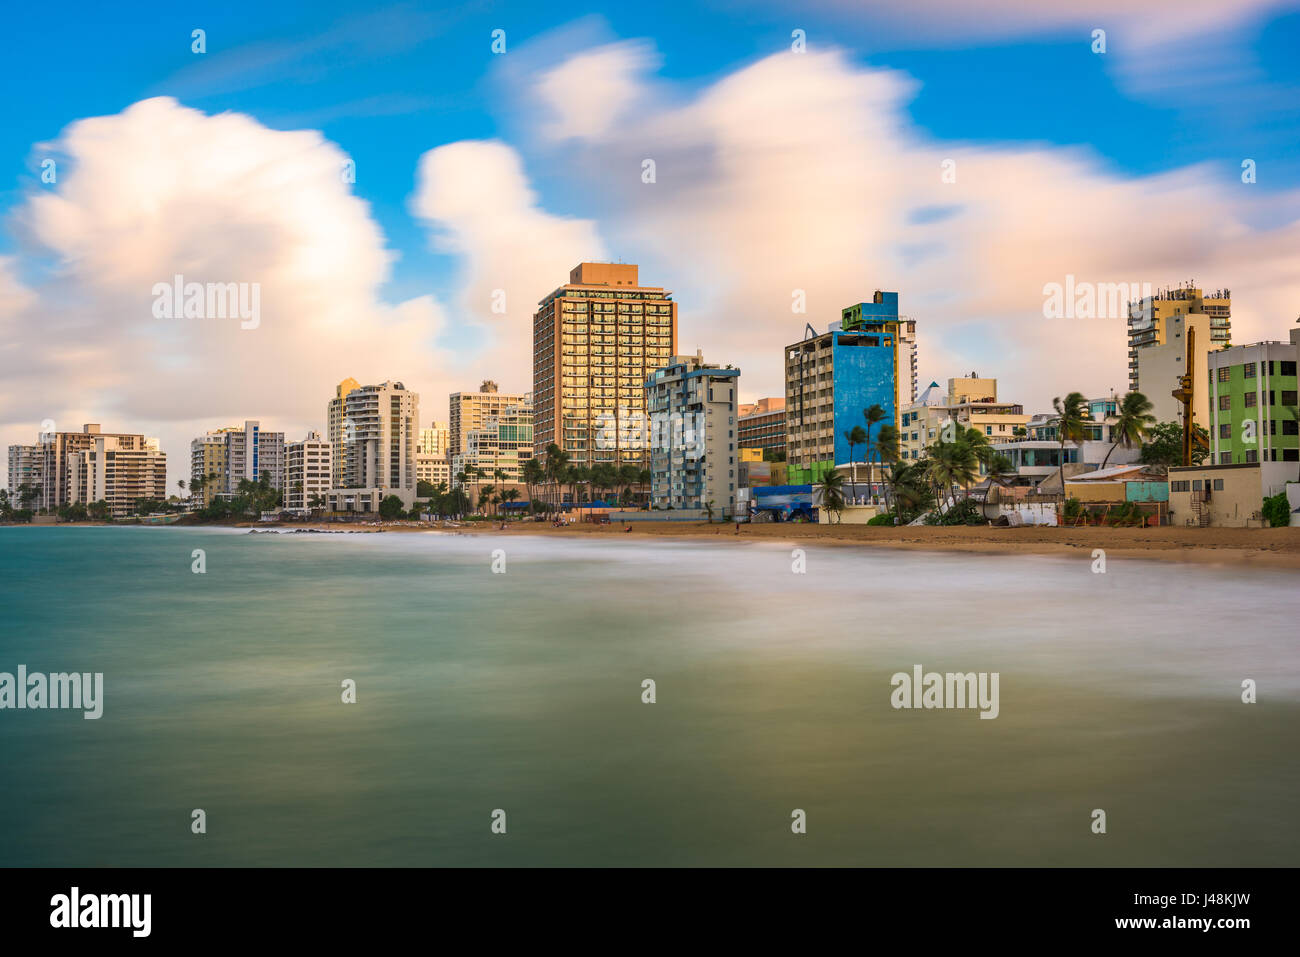 San Juan, Puerto Rico resort skyline on Condado Beach. - Stock Image